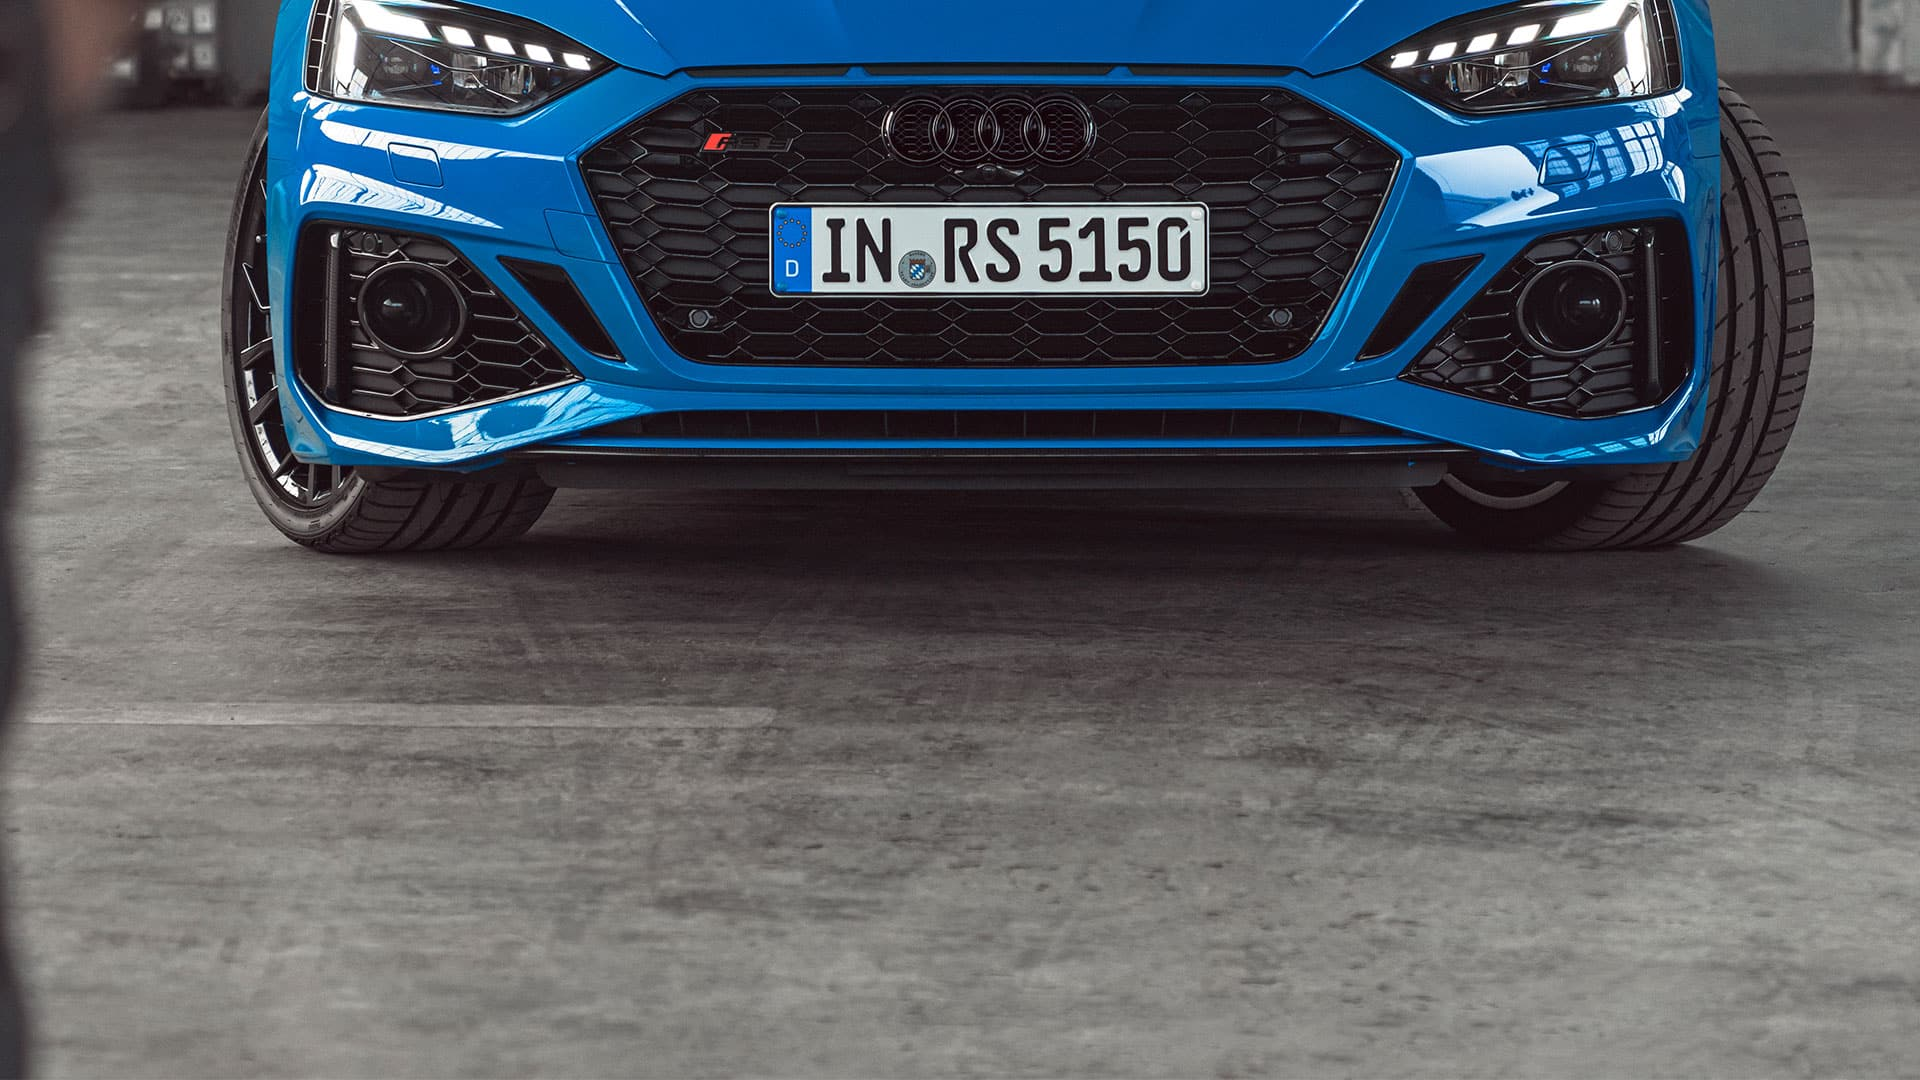 Vista frontal del Audi RS 5 Coupé